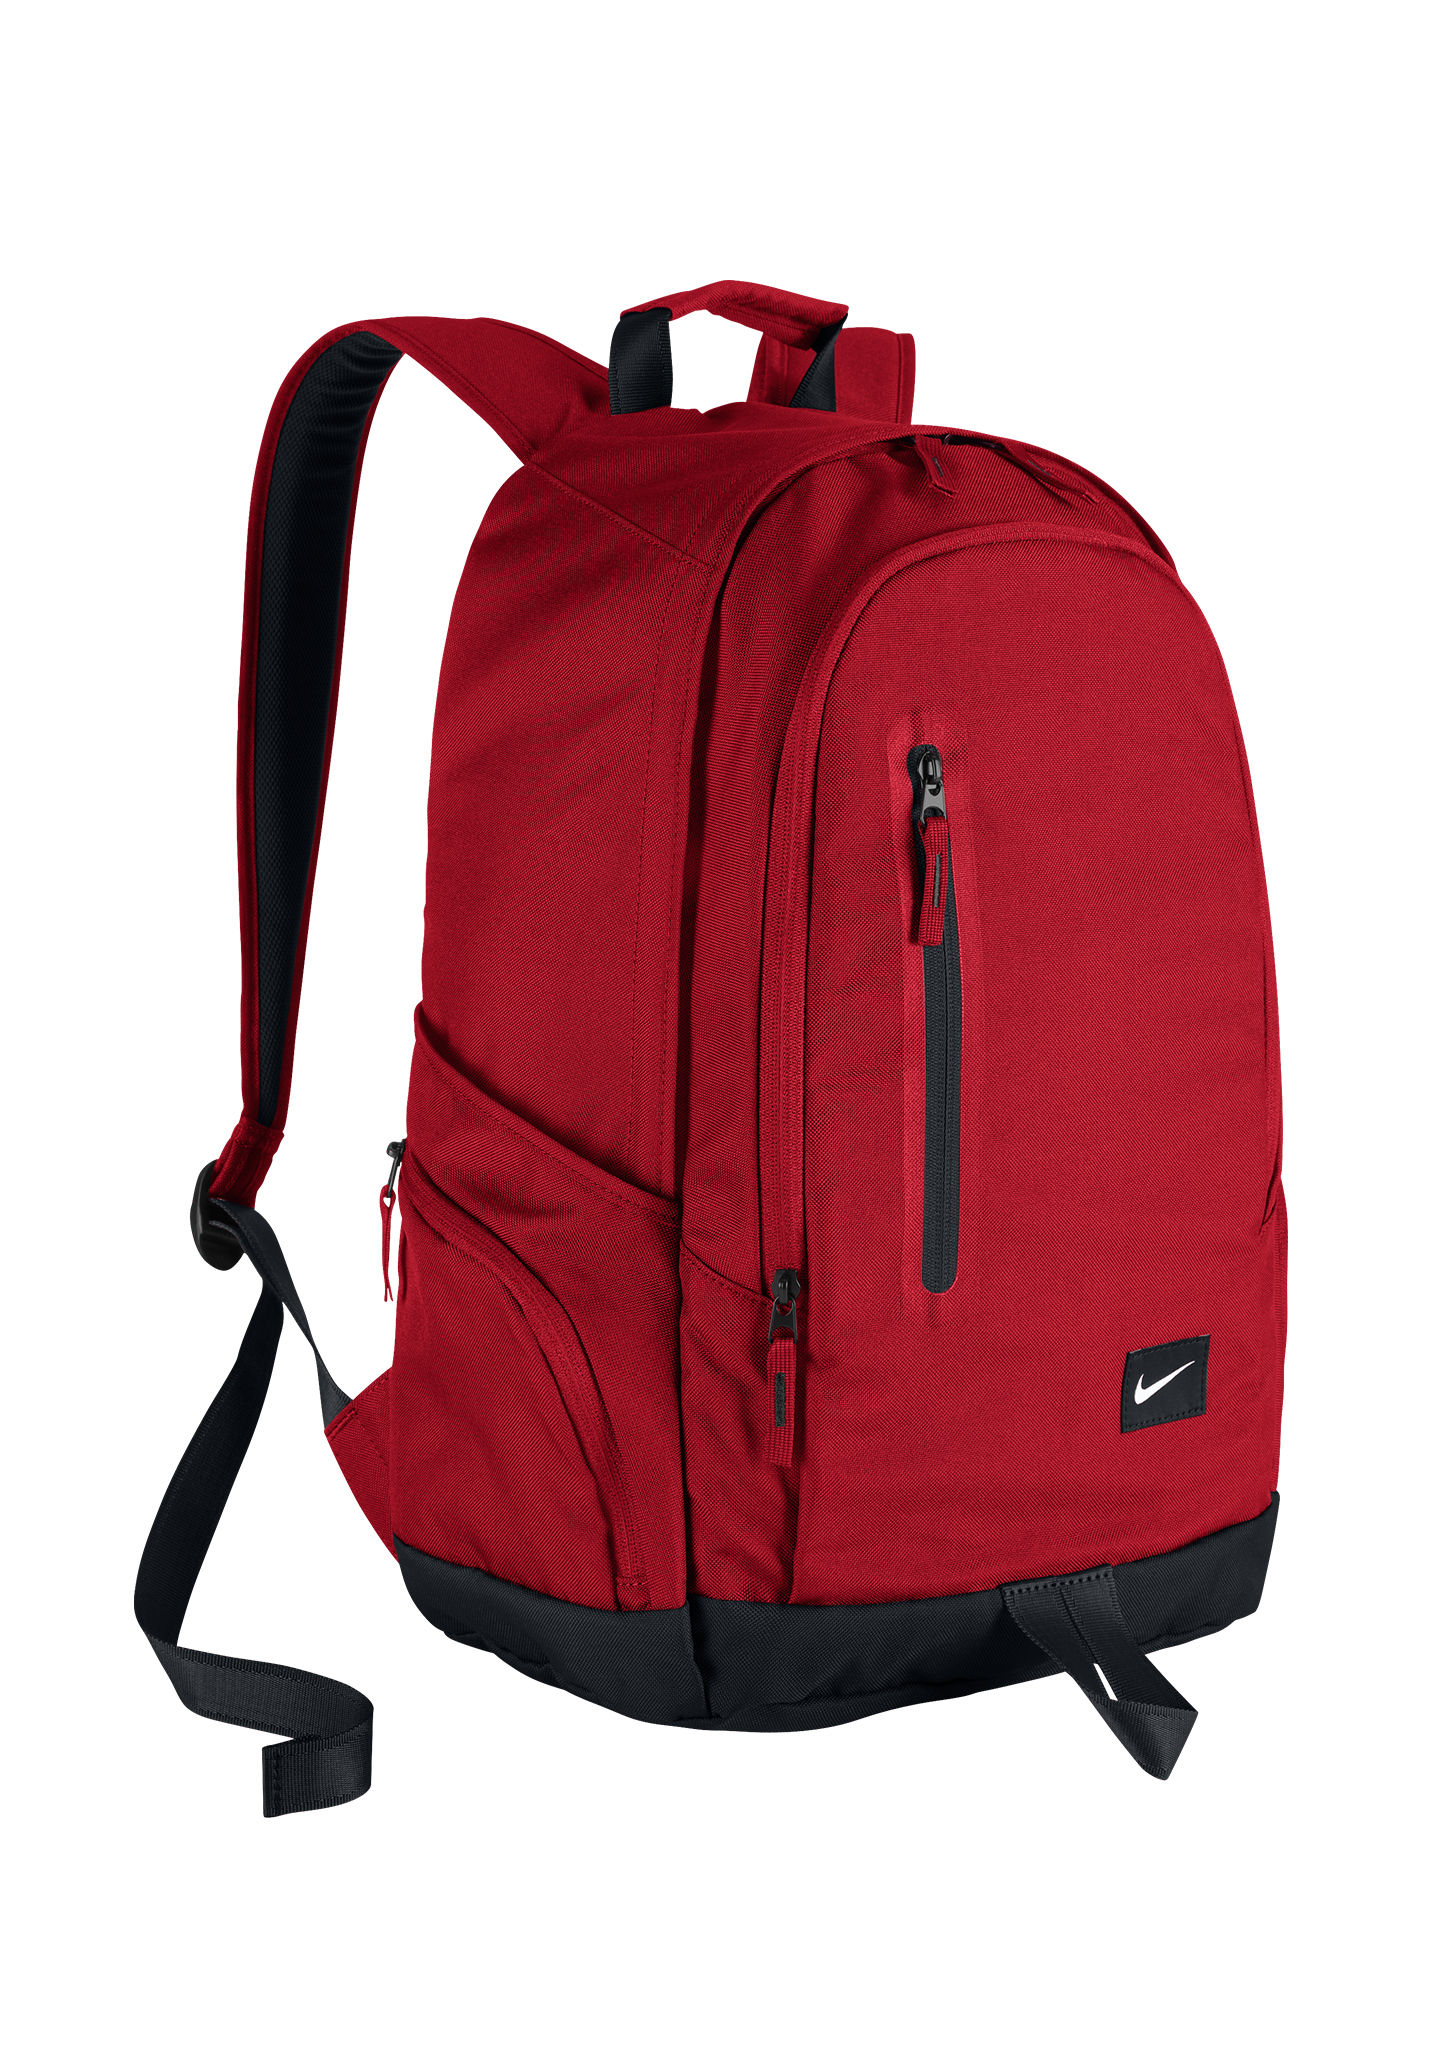 b6bfdedf1e18 NIKE SPORTSWEAR All Access Fullfare - Backpack for Men - Red - Planet Sports